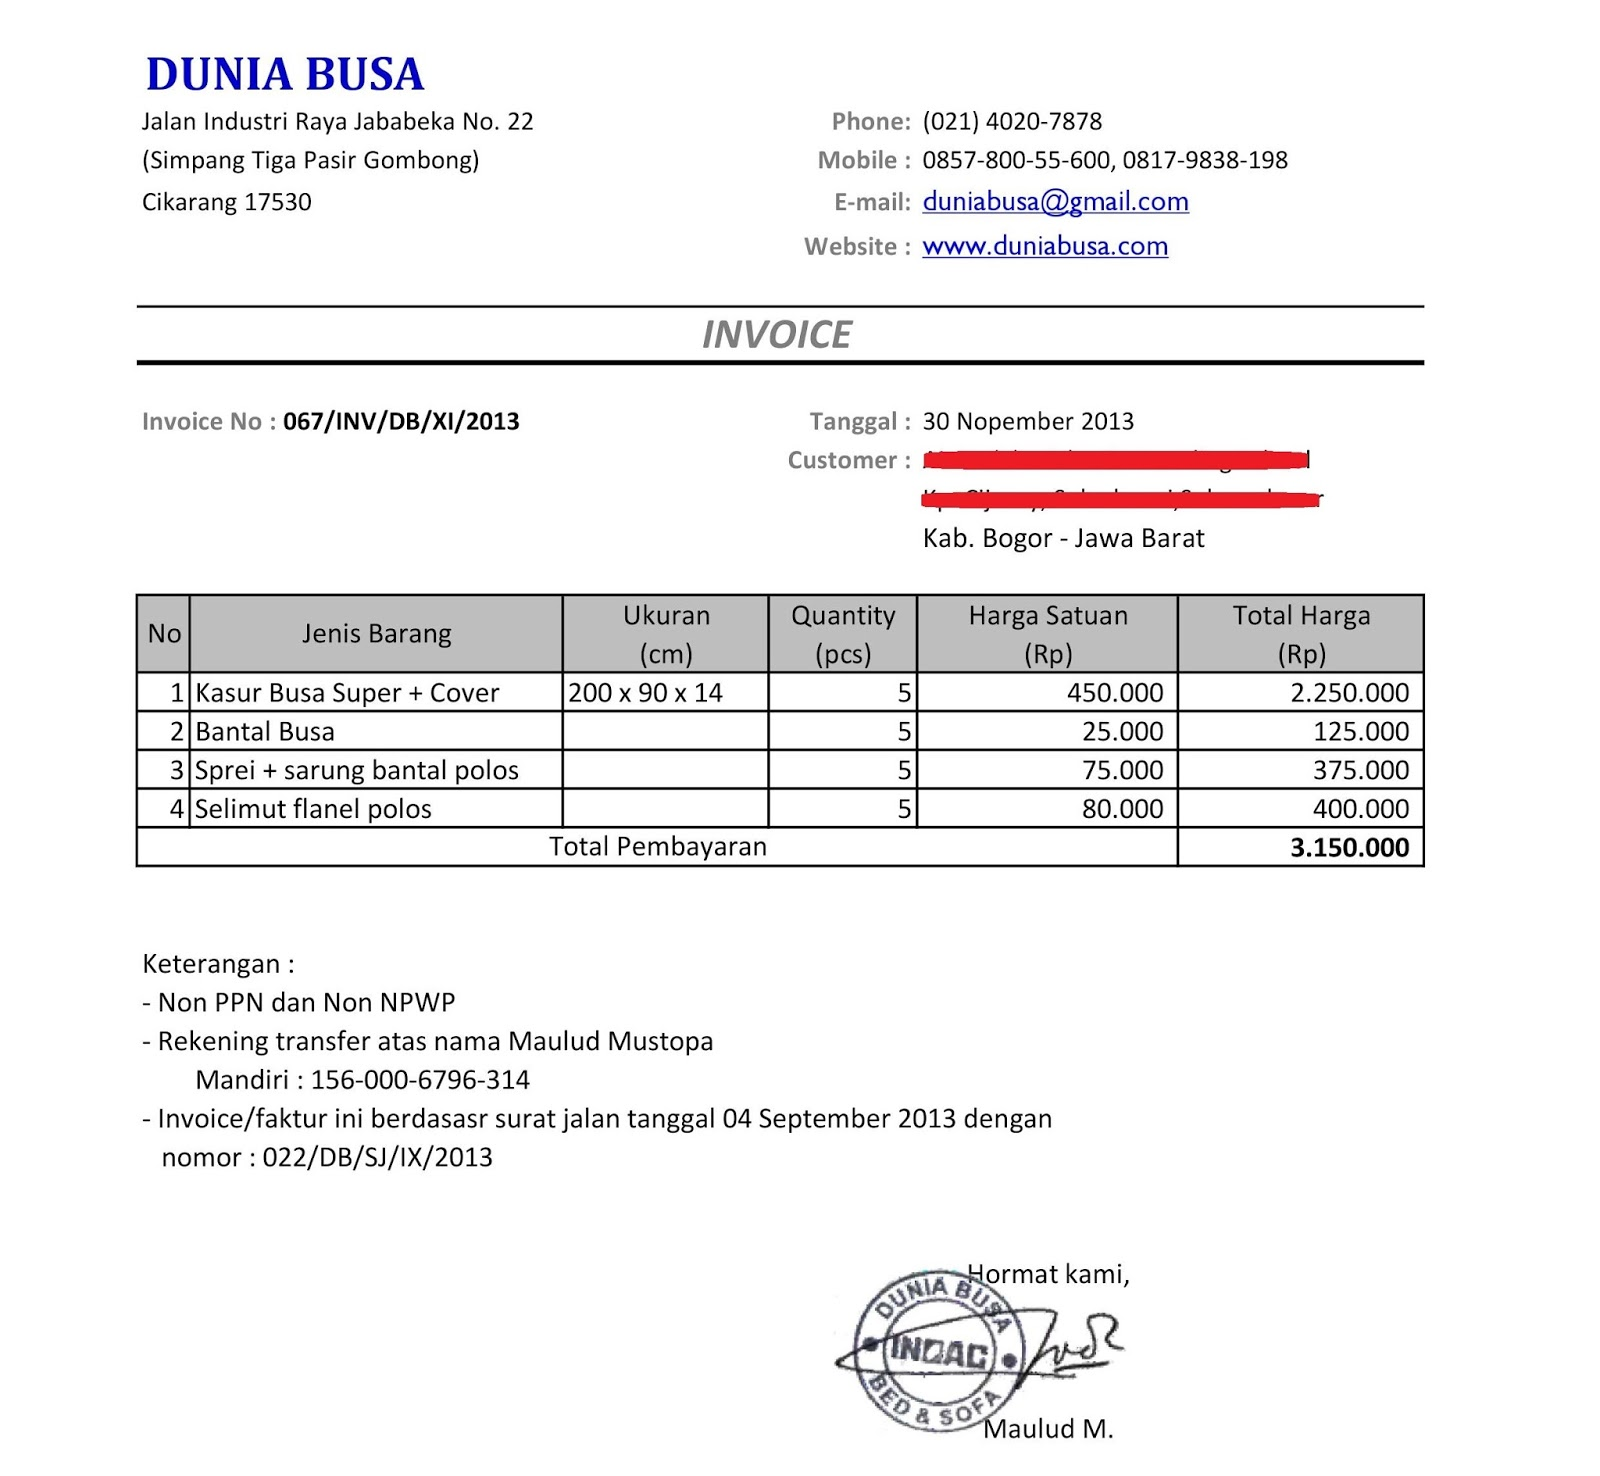 Usdgus  Pleasing Free Invoice Online  Create Invoice Online  Invoice Template  With Goodlooking Contoh Format Invoice Atau Surat Tagihan  Brankas Arsip  Free Invoice Online With Awesome Vehicle Invoice Price By Vin Also Invoice Price Of Bond In Addition Examples Of Invoices For Services Rendered And Photo Invoice Template As Well As How To Write A Simple Invoice Additionally Invoice Tool From Sklepco With Usdgus  Goodlooking Free Invoice Online  Create Invoice Online  Invoice Template  With Awesome Contoh Format Invoice Atau Surat Tagihan  Brankas Arsip  Free Invoice Online And Pleasing Vehicle Invoice Price By Vin Also Invoice Price Of Bond In Addition Examples Of Invoices For Services Rendered From Sklepco